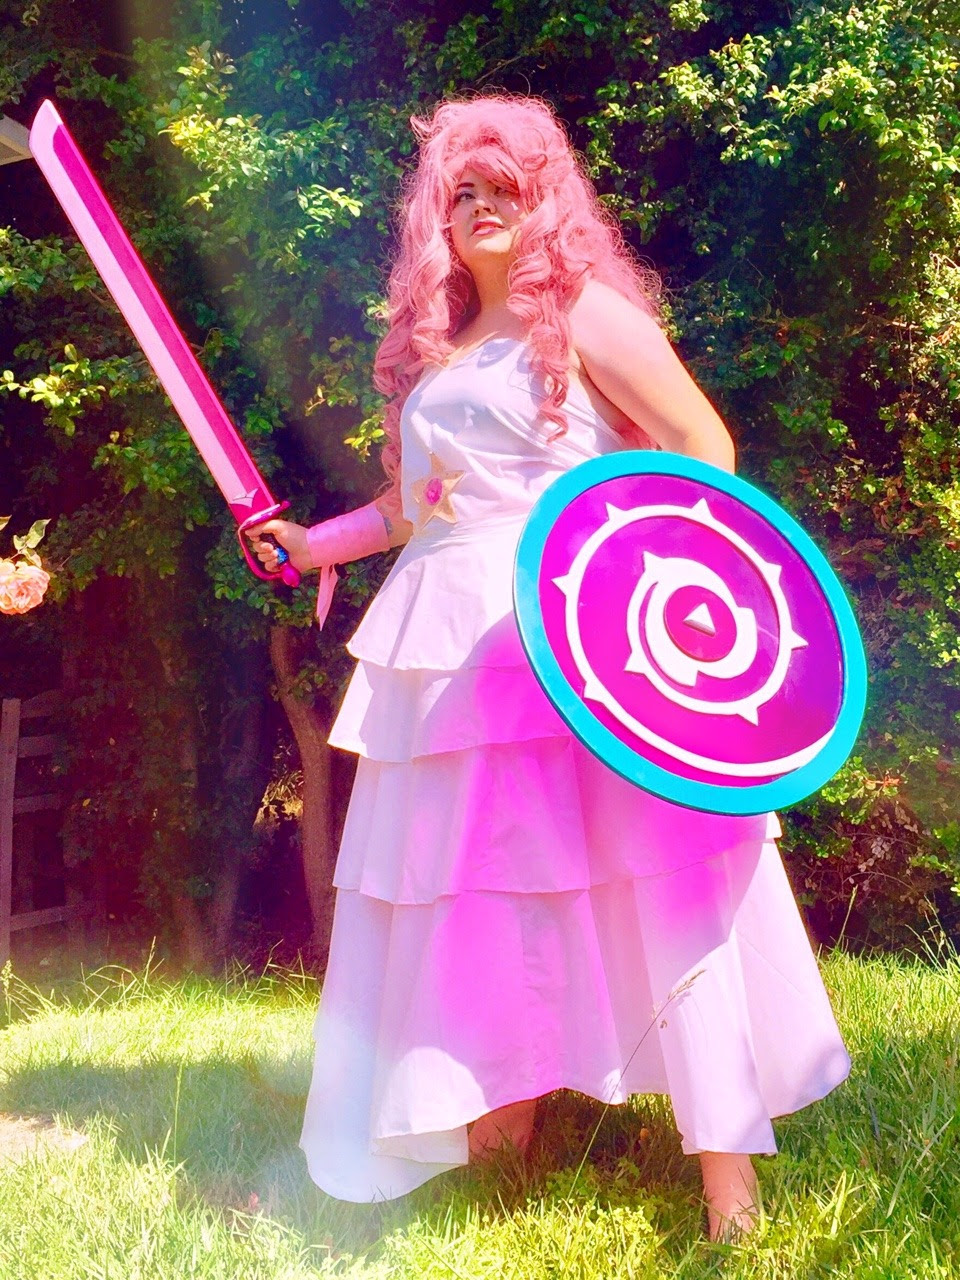 ROSE QUARTZ IS FULLY REVAMPED AND READY TO GO FOR COMIC CON!!! 💖💖💖